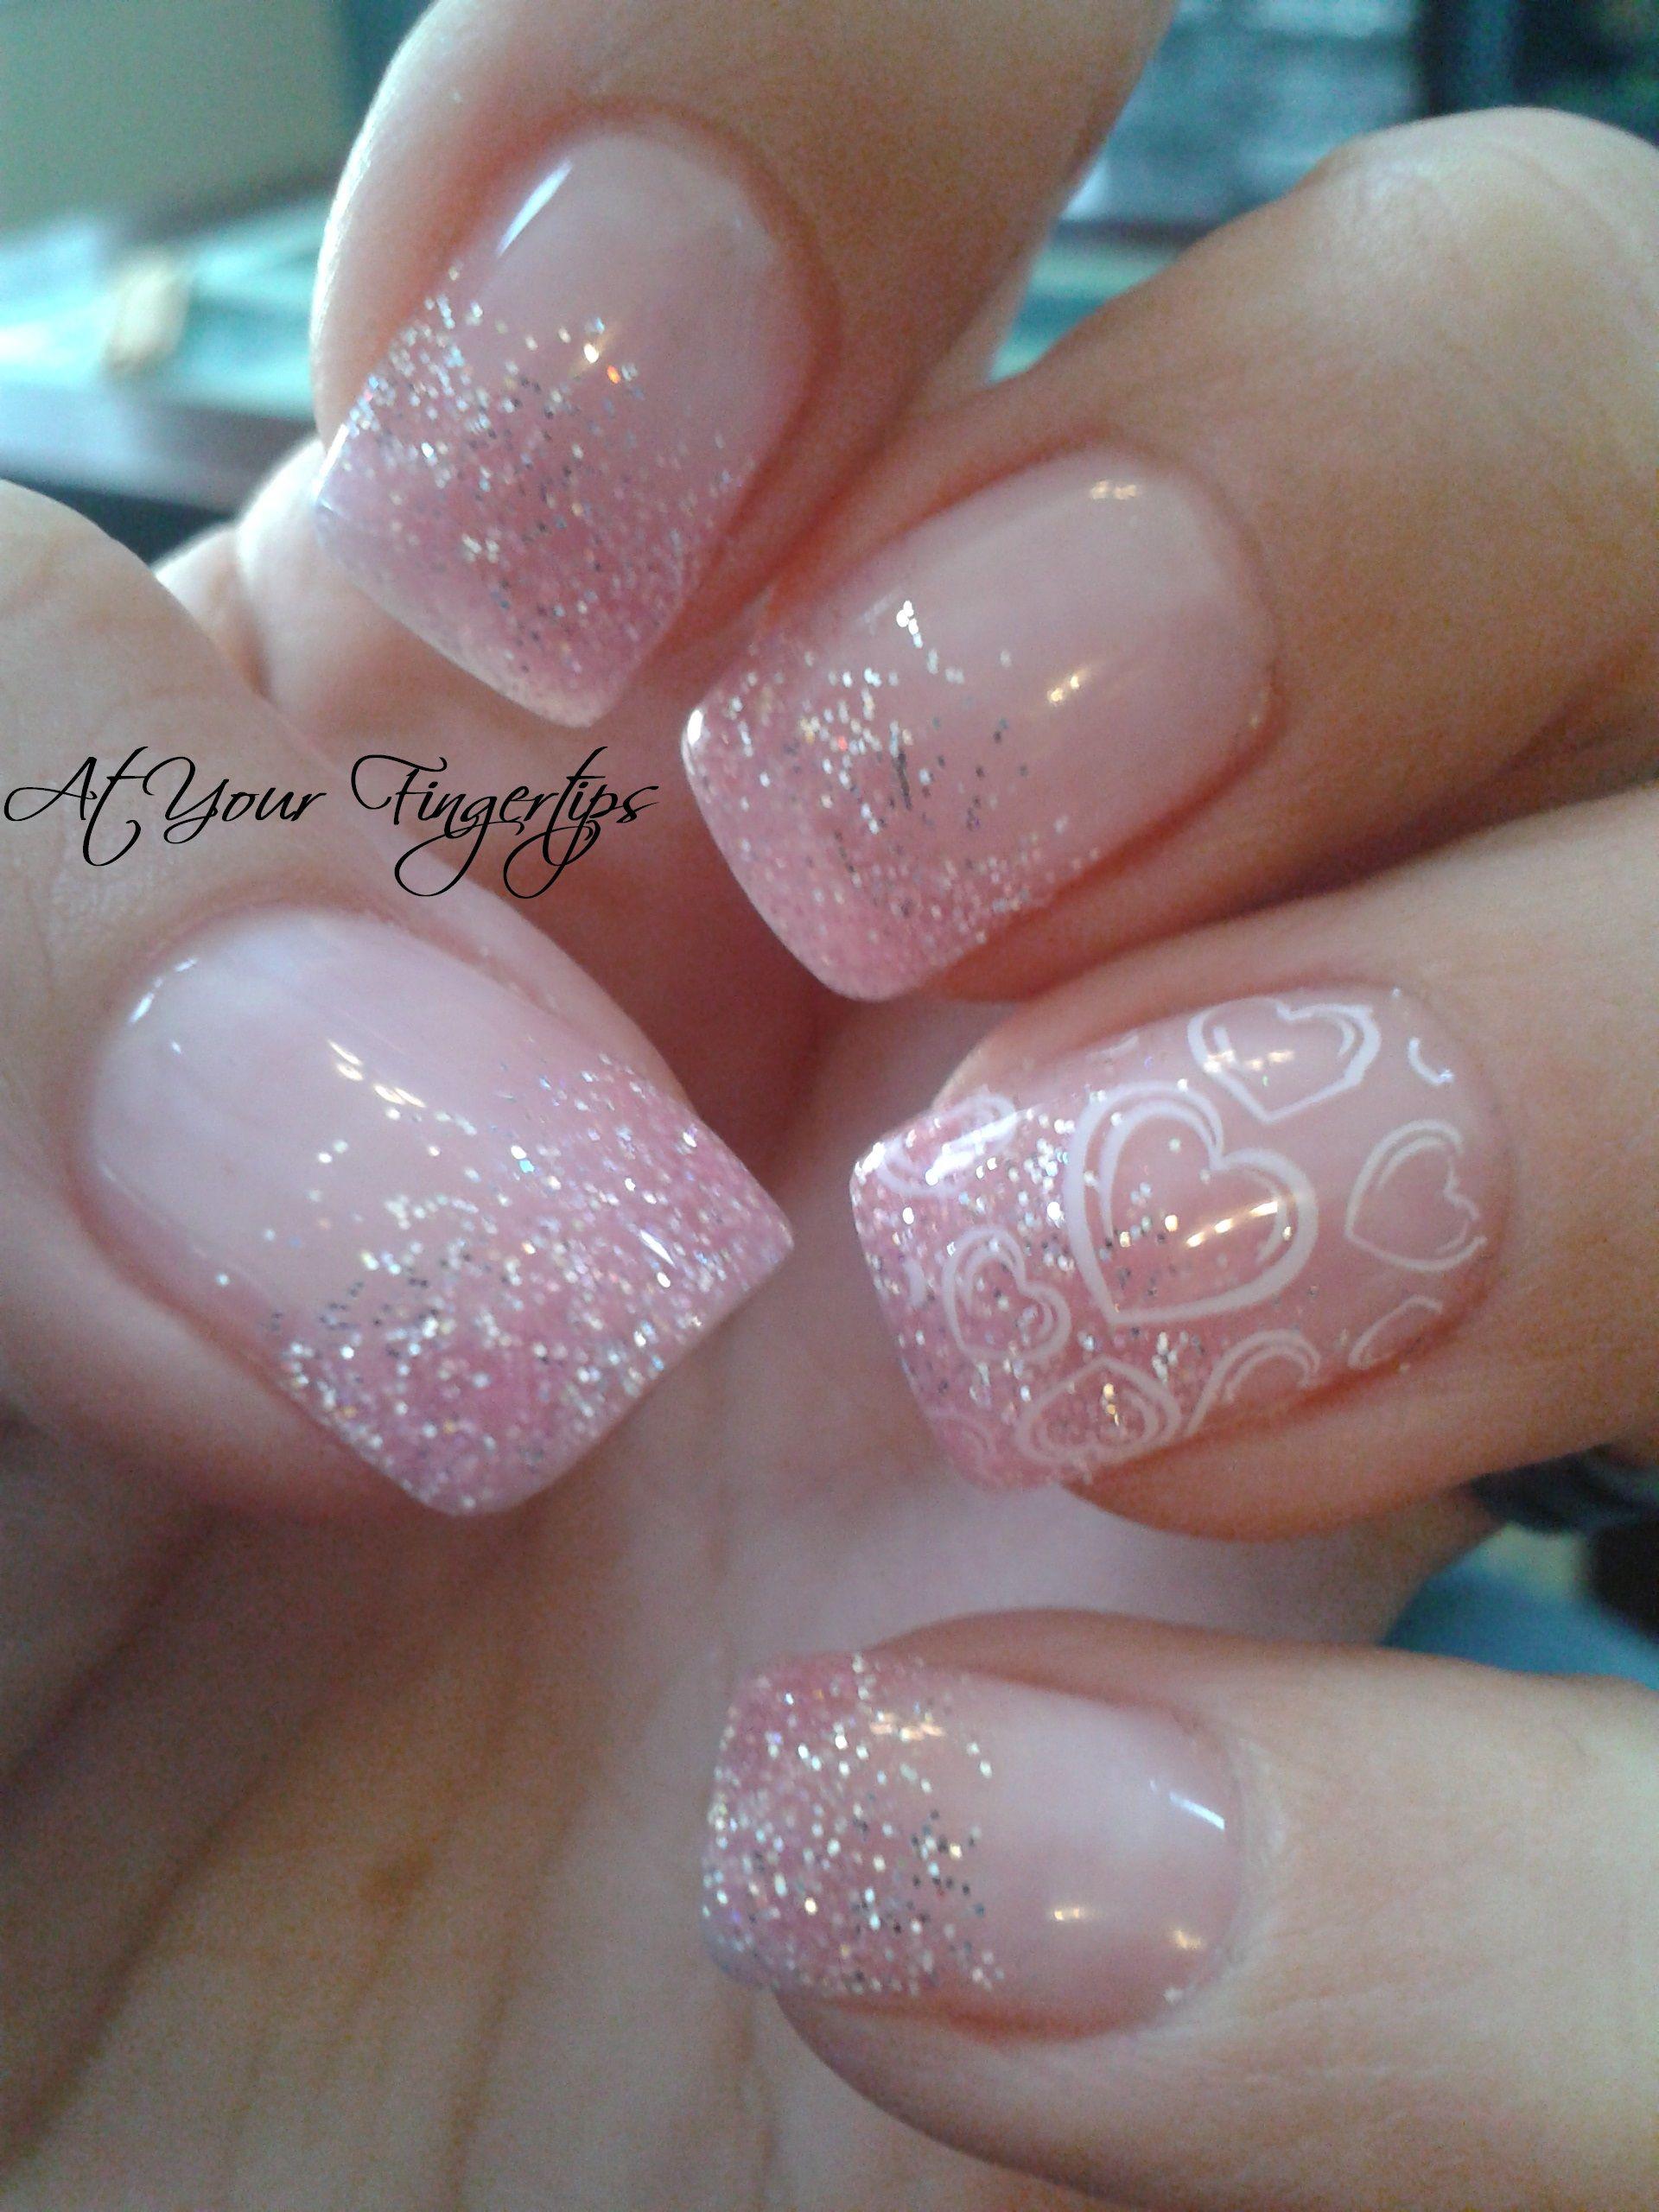 Coole Gelnägel Gelnägel Designs 5 Besten Nails Pinterest Nägel Coole Nägel